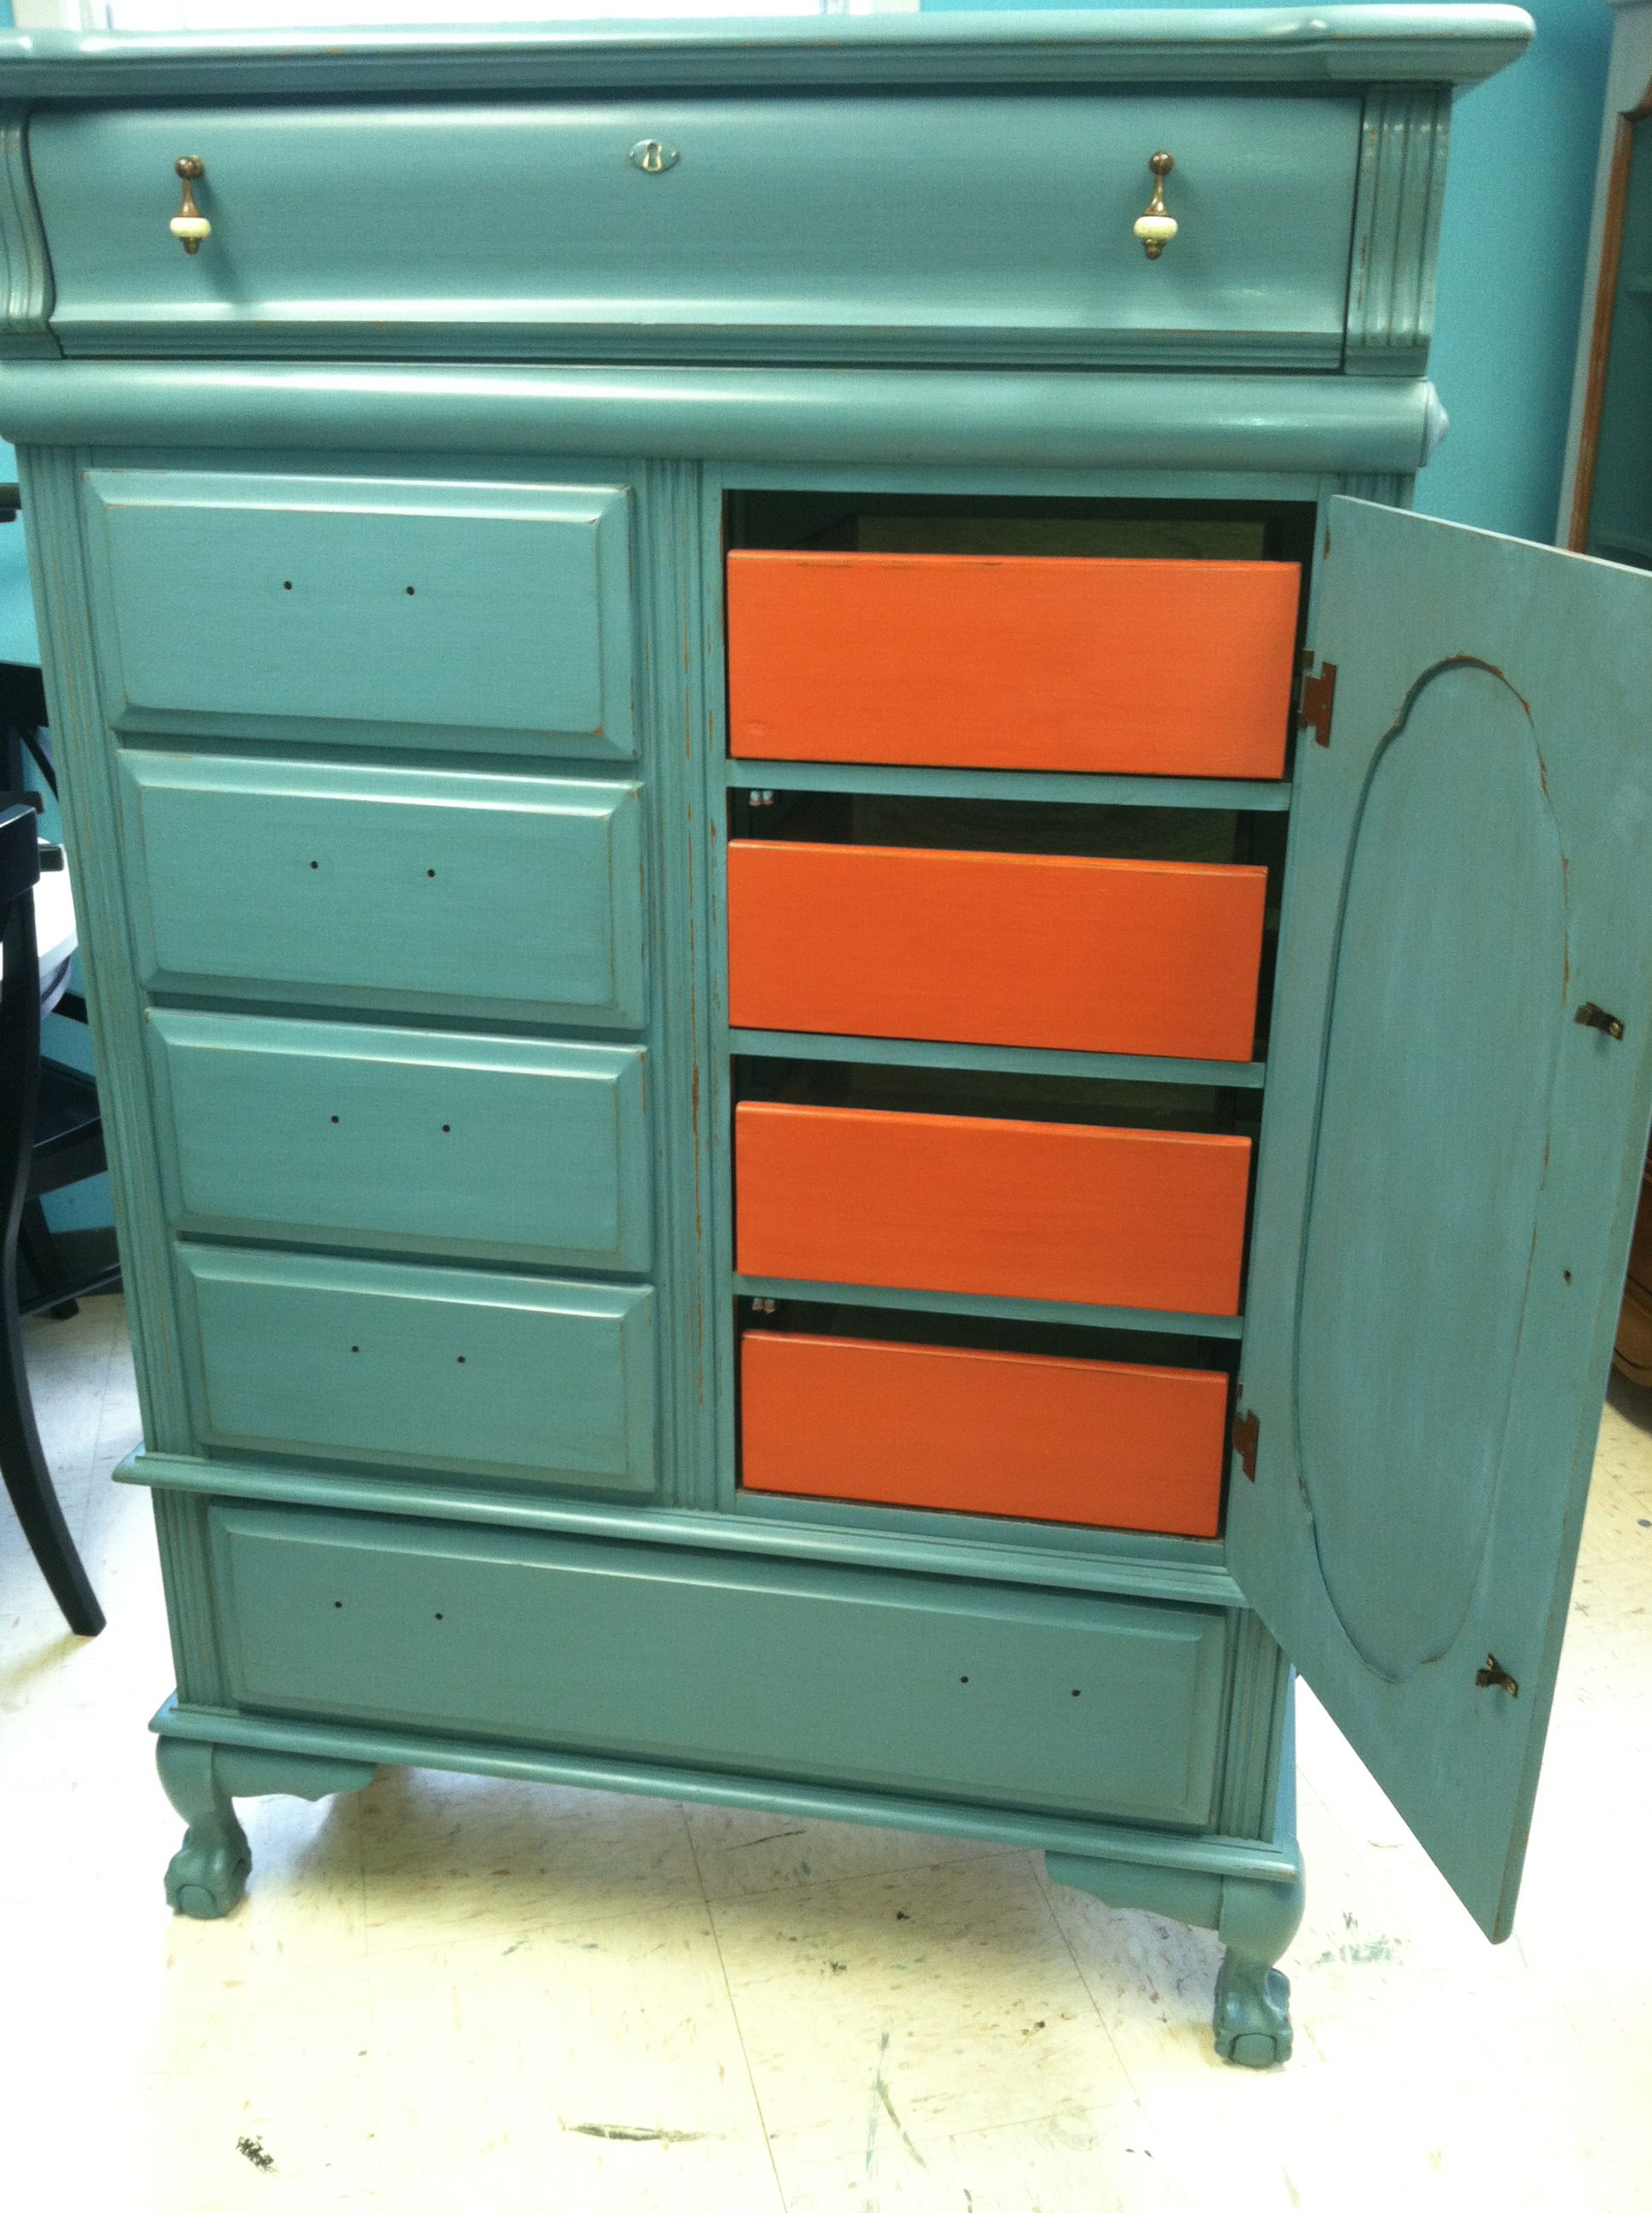 Maison Blanche La Craie Paint French Blue outside and Cayenne drawers on the inside  www.reinvented-vintage.com